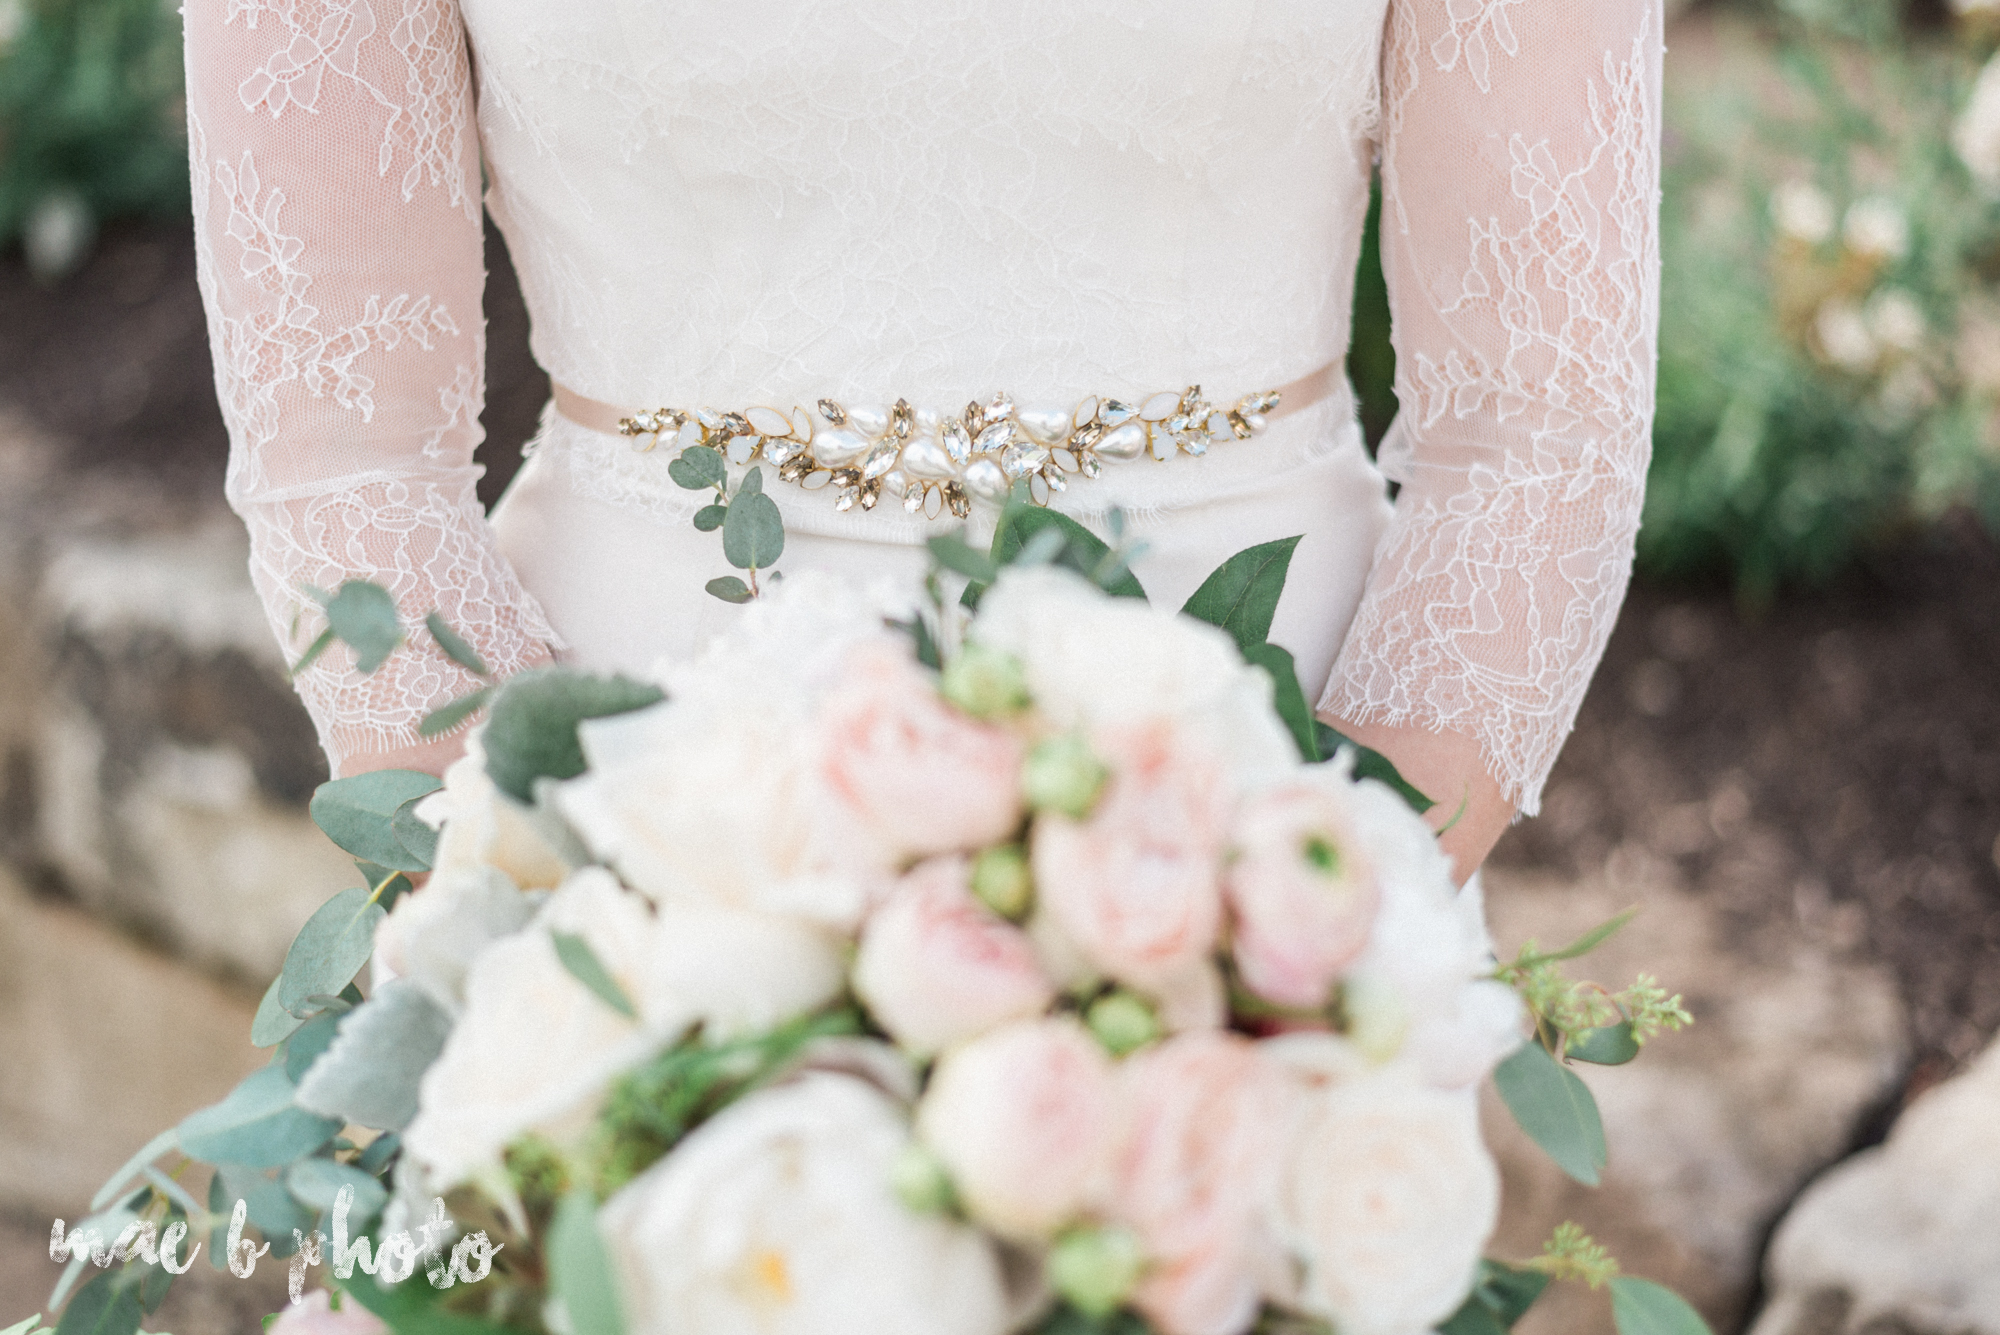 emily and michael's industrial chic summer country club wedding at the lake club in poland ohio photographed by cleveland wedding photographer mae b photo-80.jpg